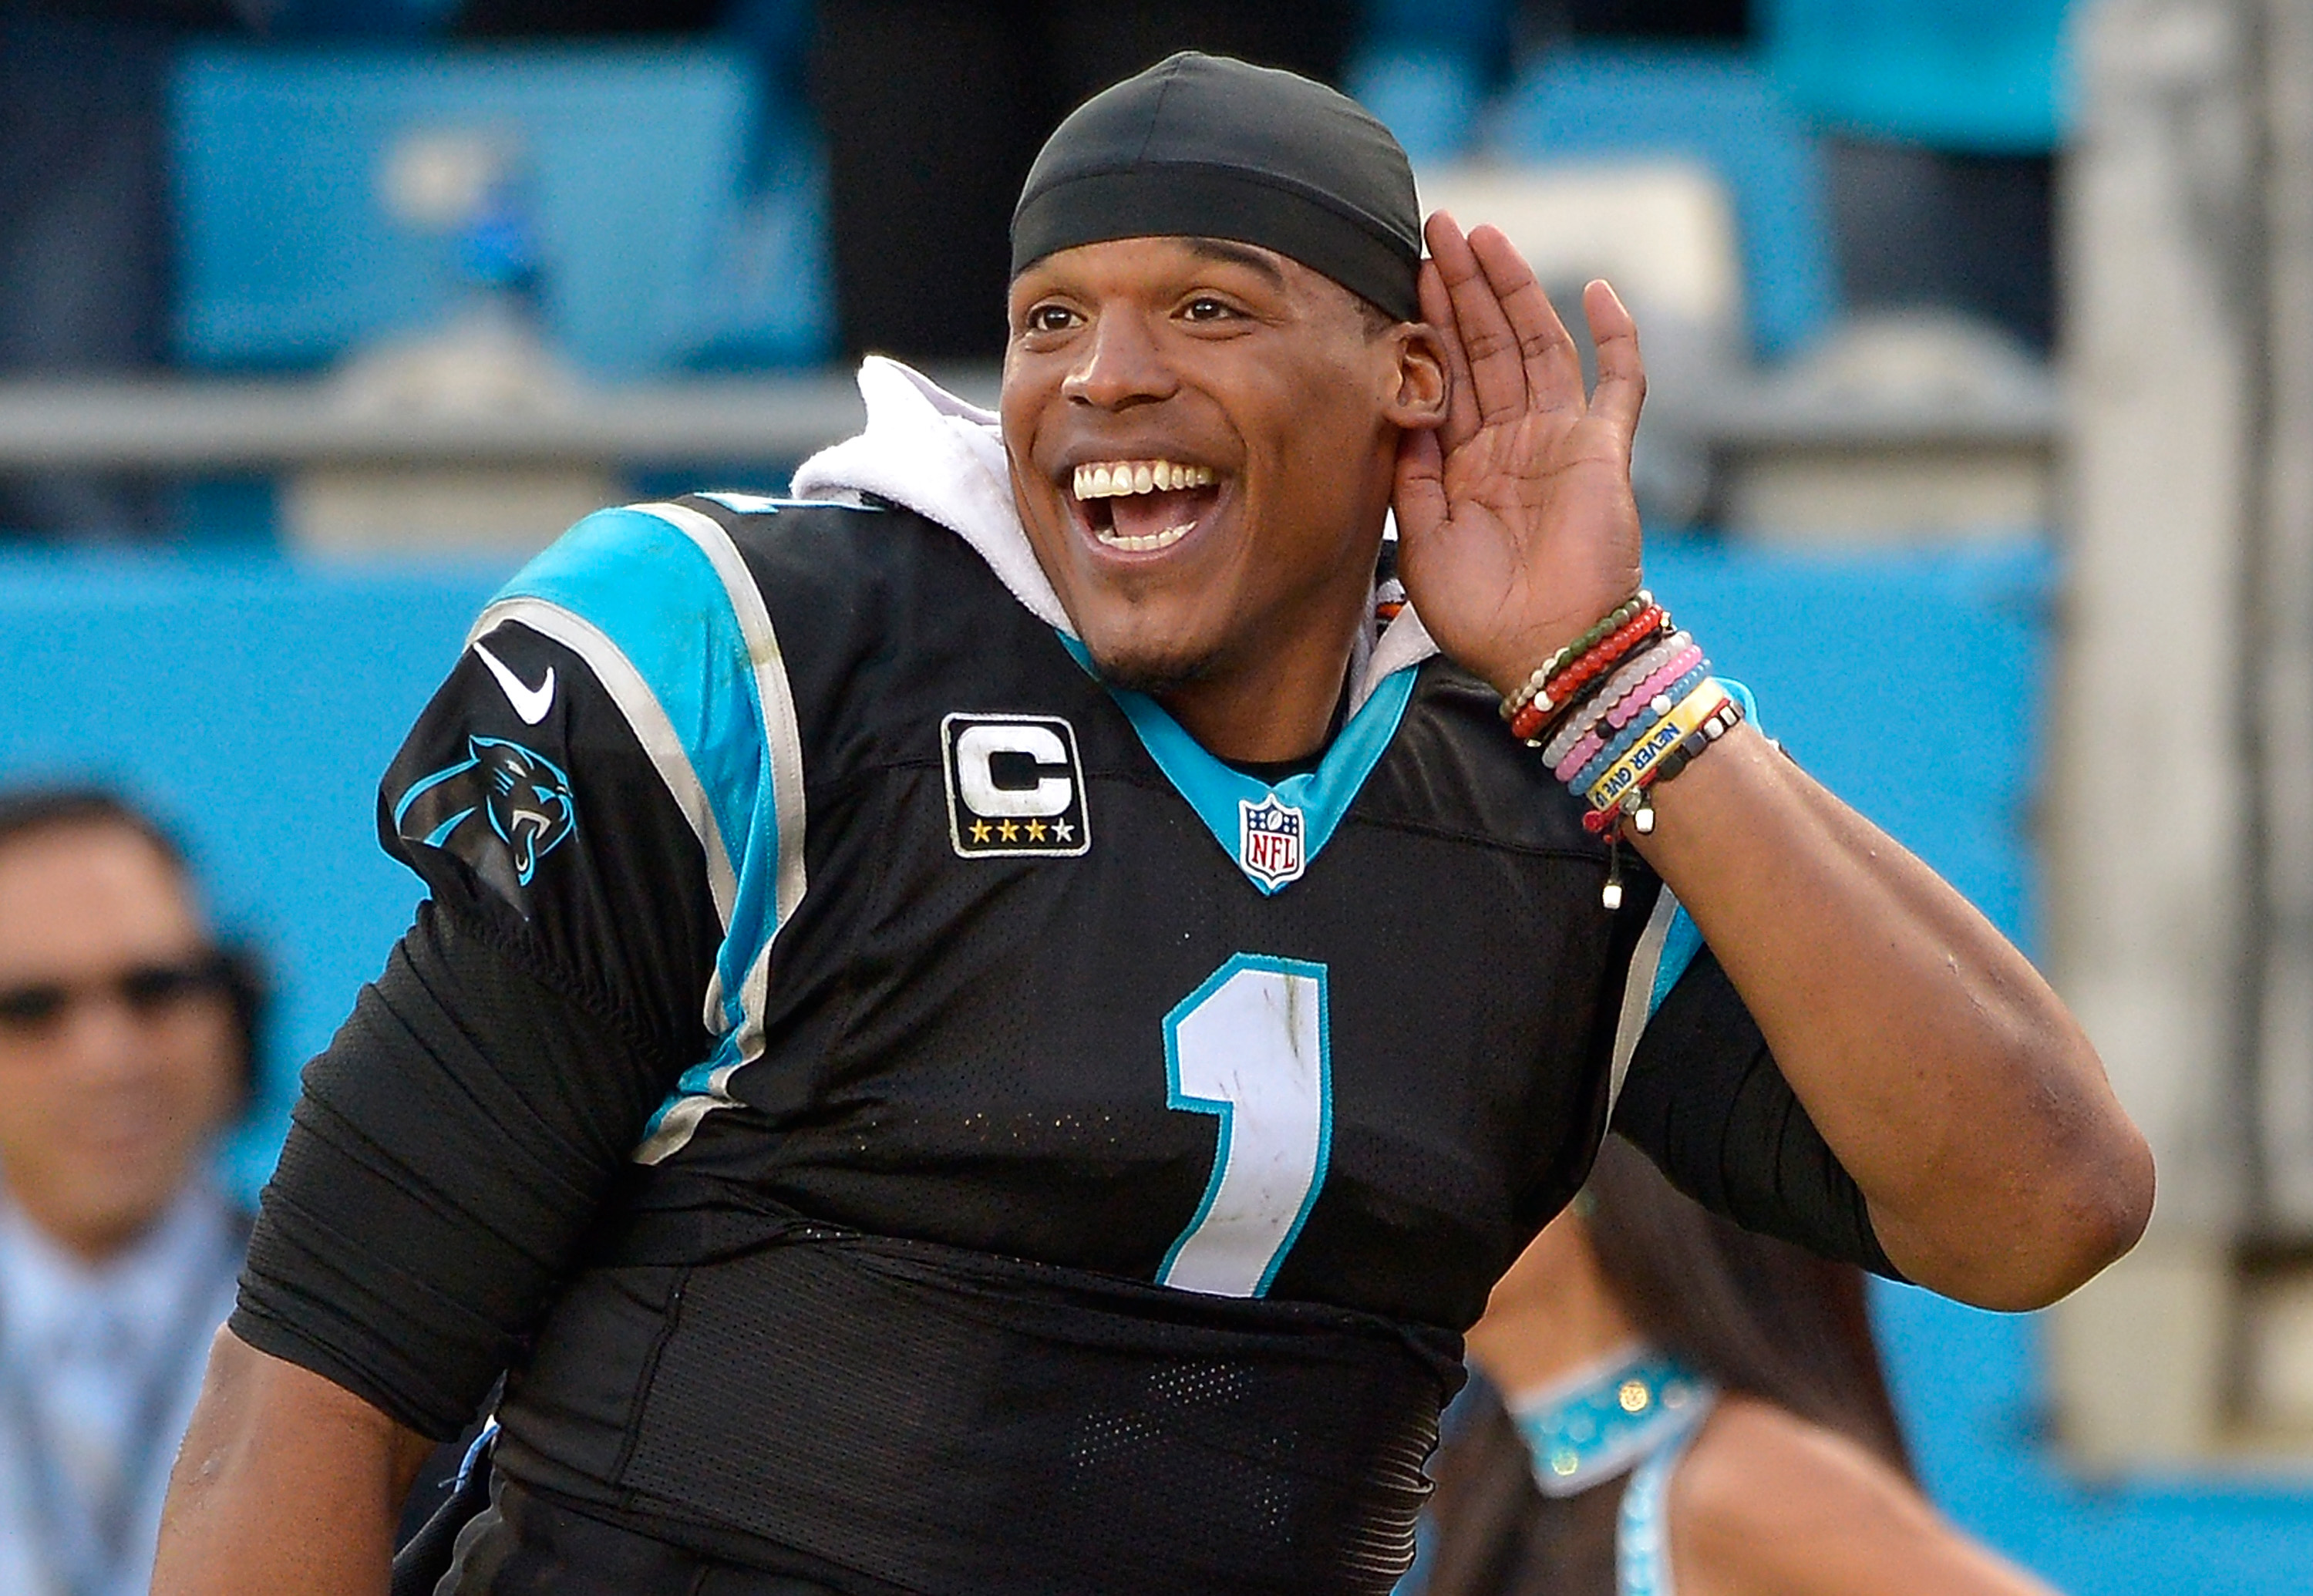 Cam Newton listening to the crowd cheer